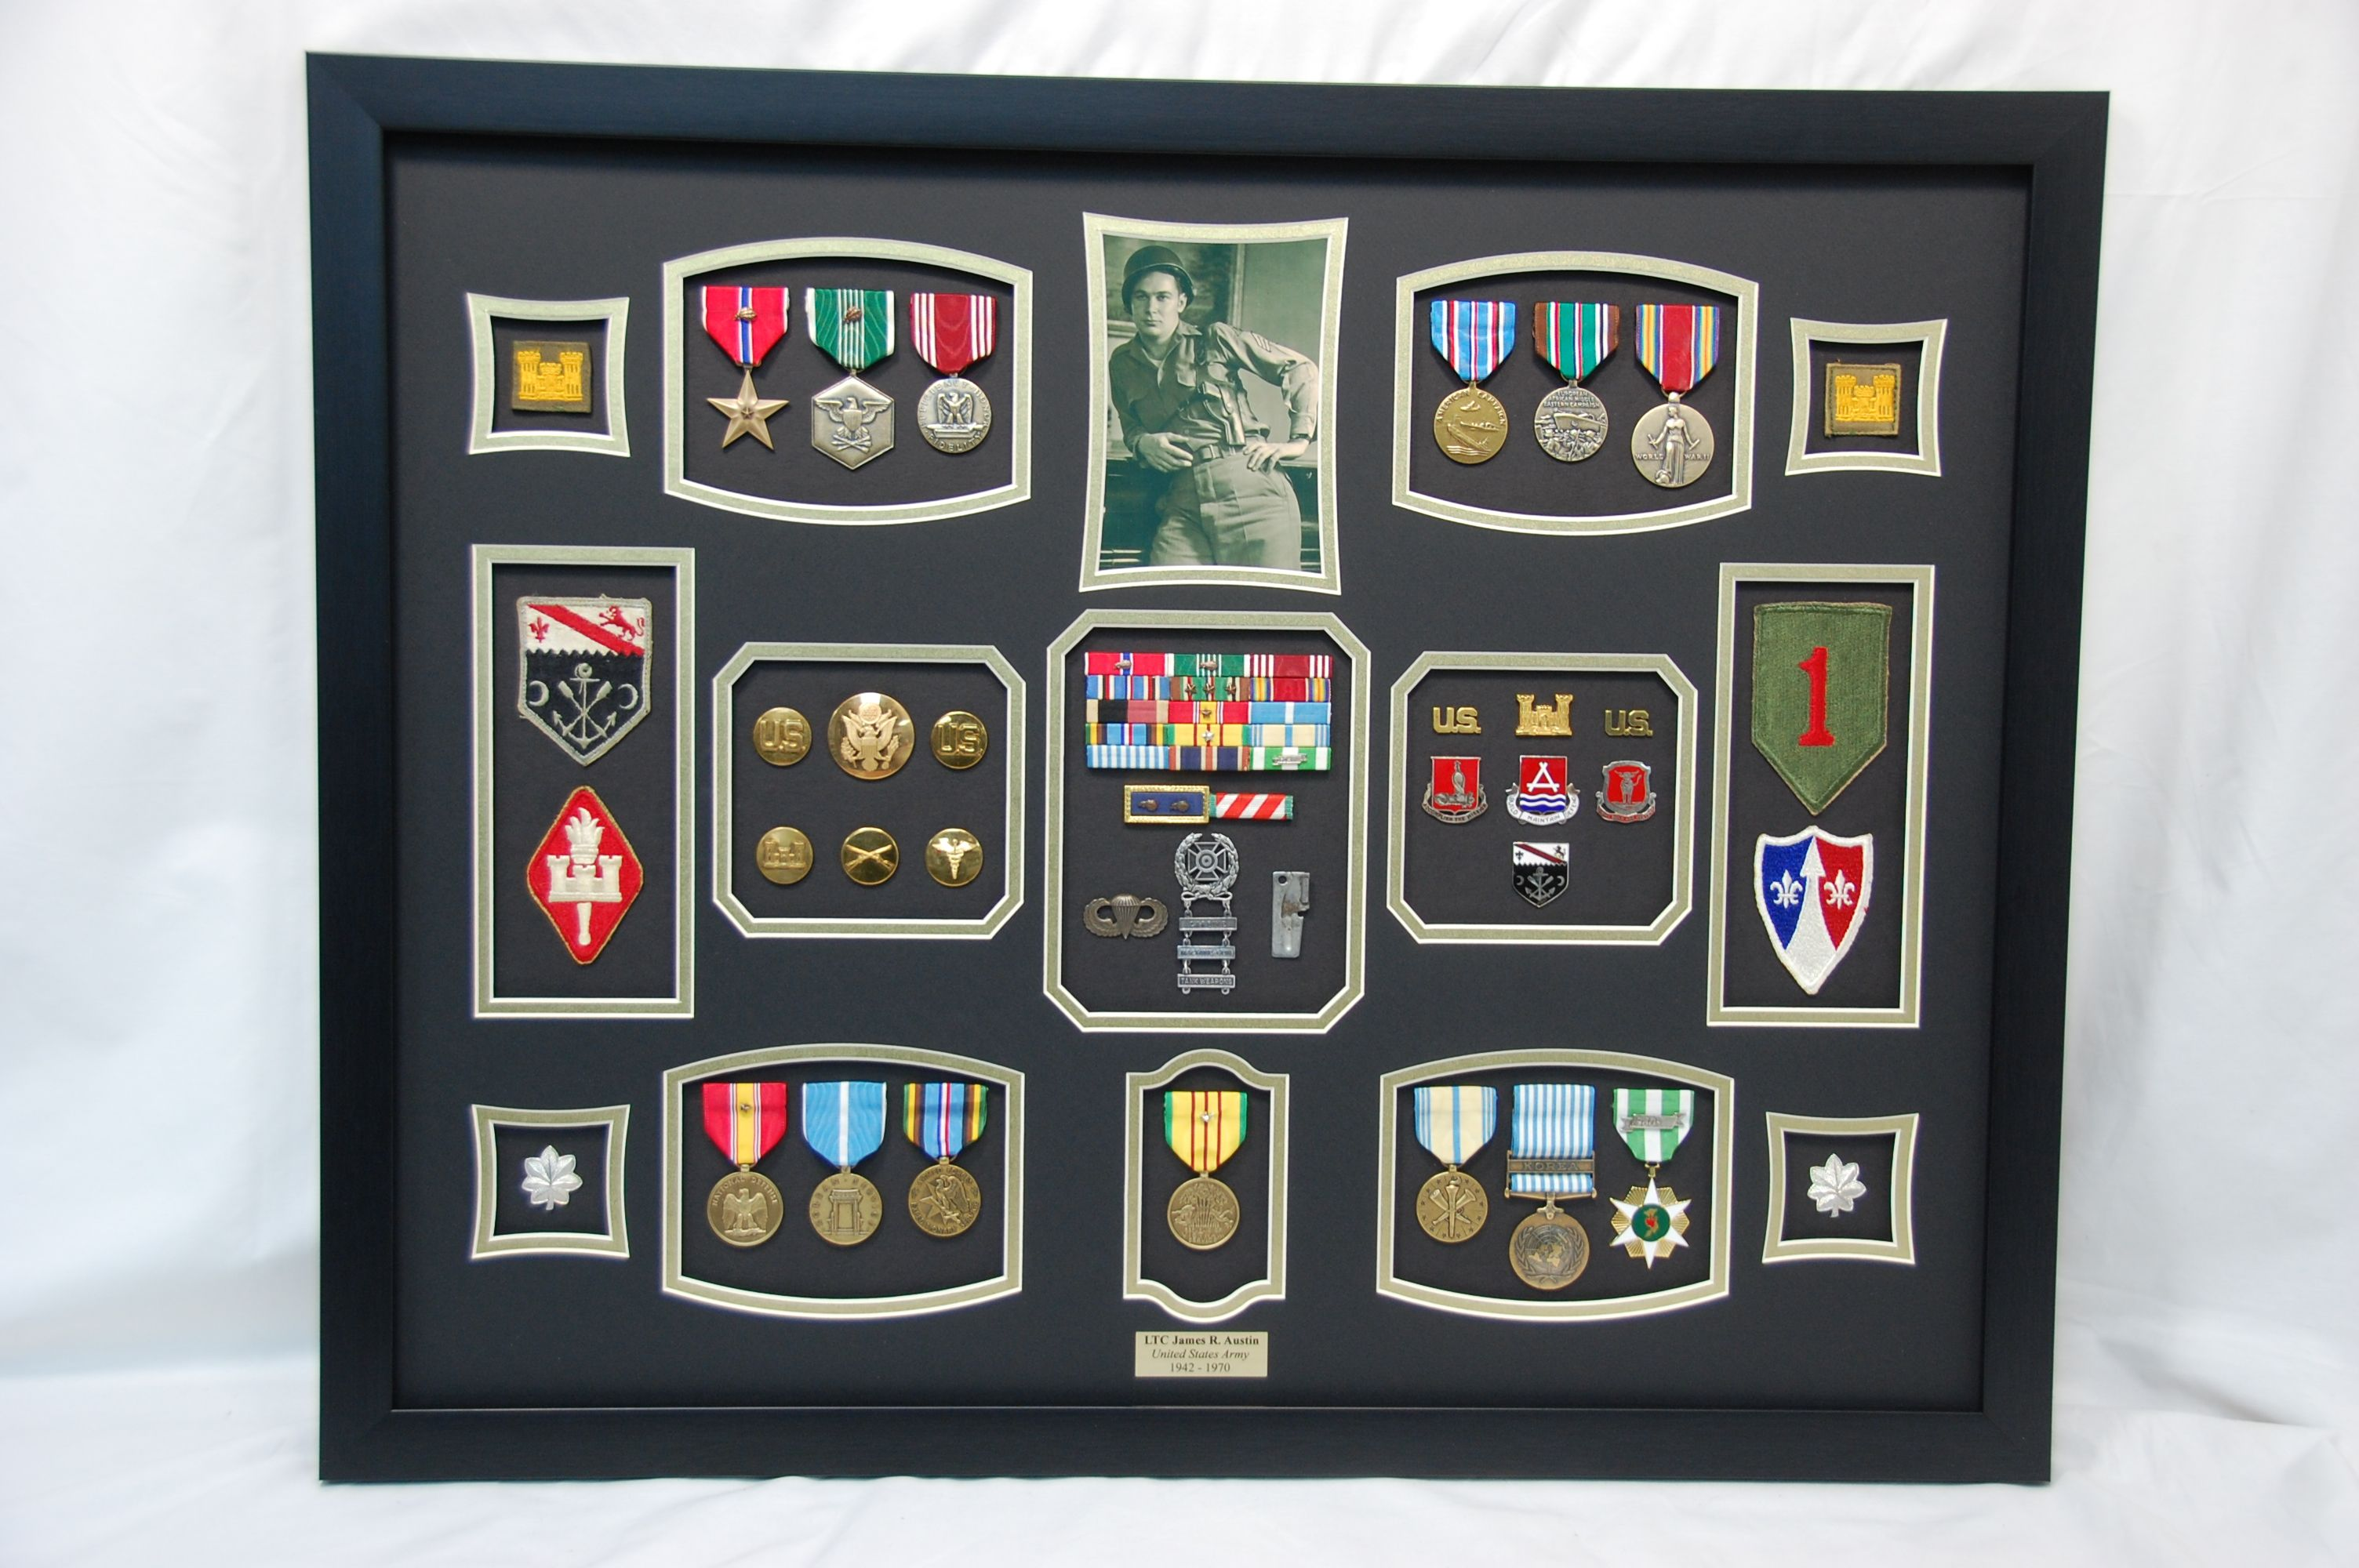 Us Army Ltc Military Shadow Box Display W Medals Patches And